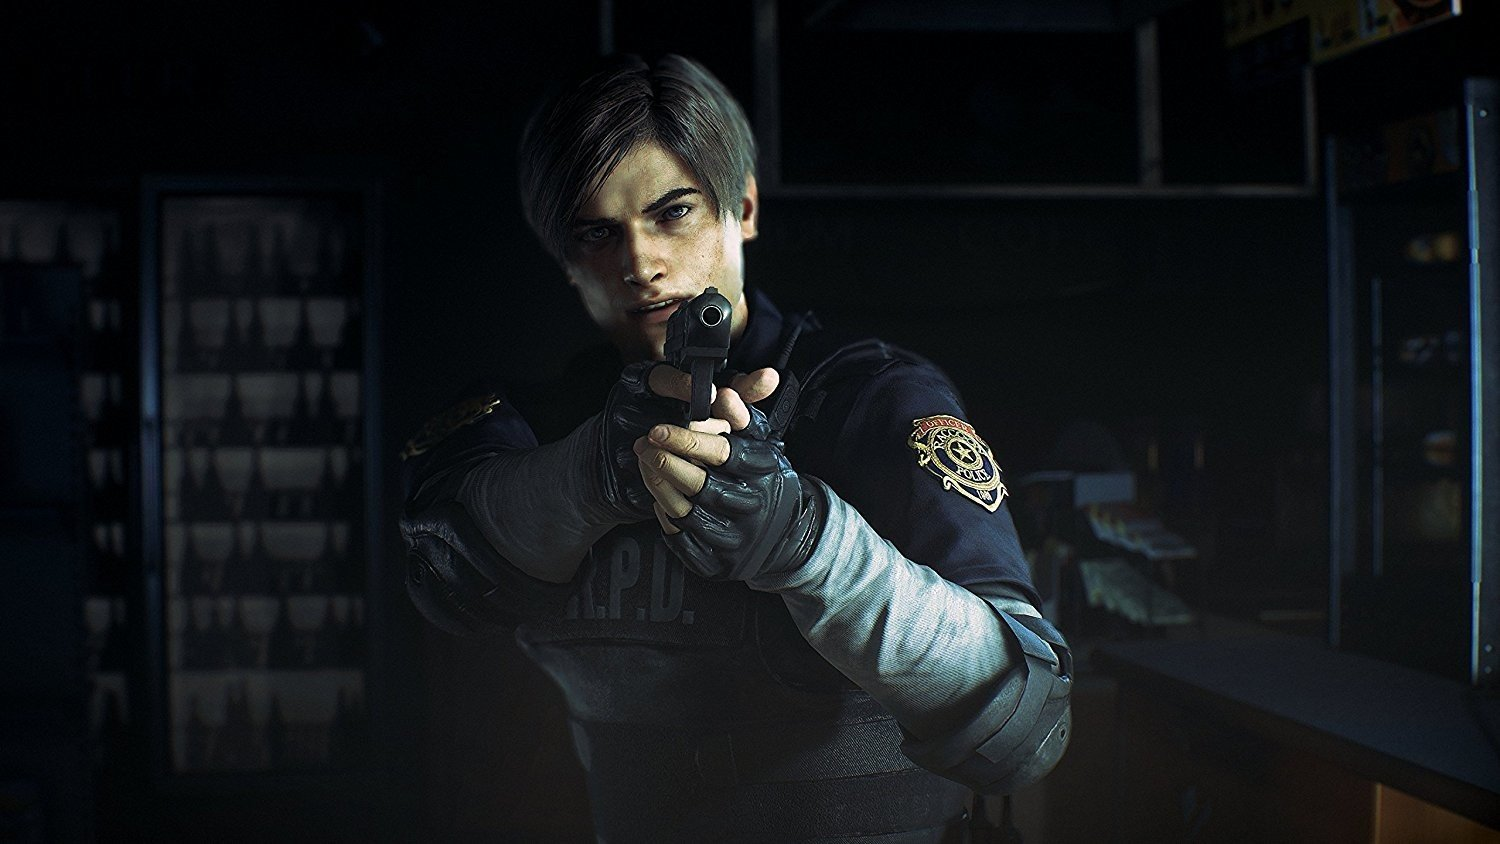 Resident Evil 2's system requirements won't kill your PC